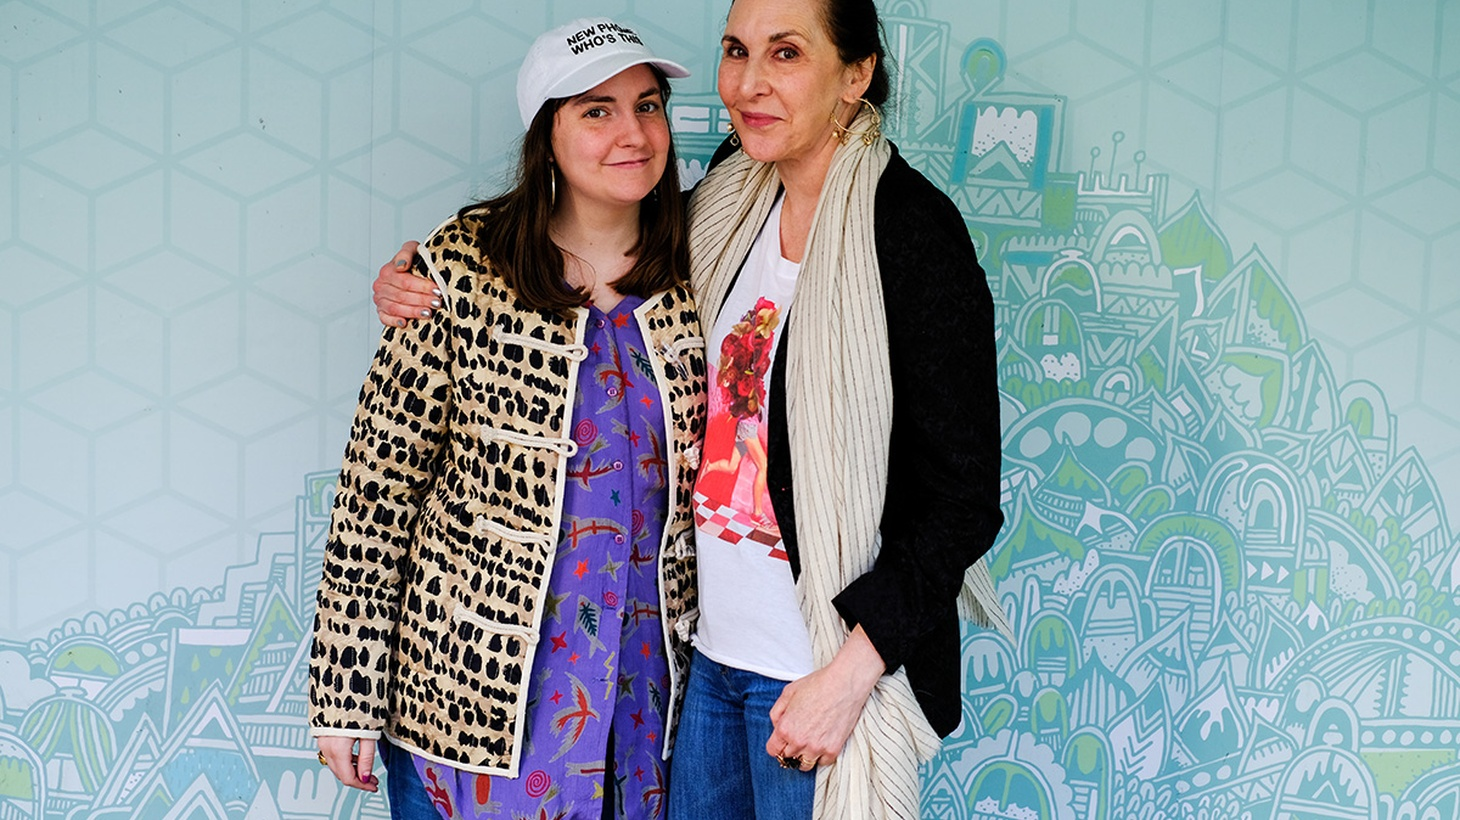 """New York artist Laurie Simmons has made a movie called """"My Art,"""" which includes a cameo by her daughter, Lena Dunham. The film is about a 60-something woman artist breaking ground on a new project. It deals with some very timely feminist issues."""